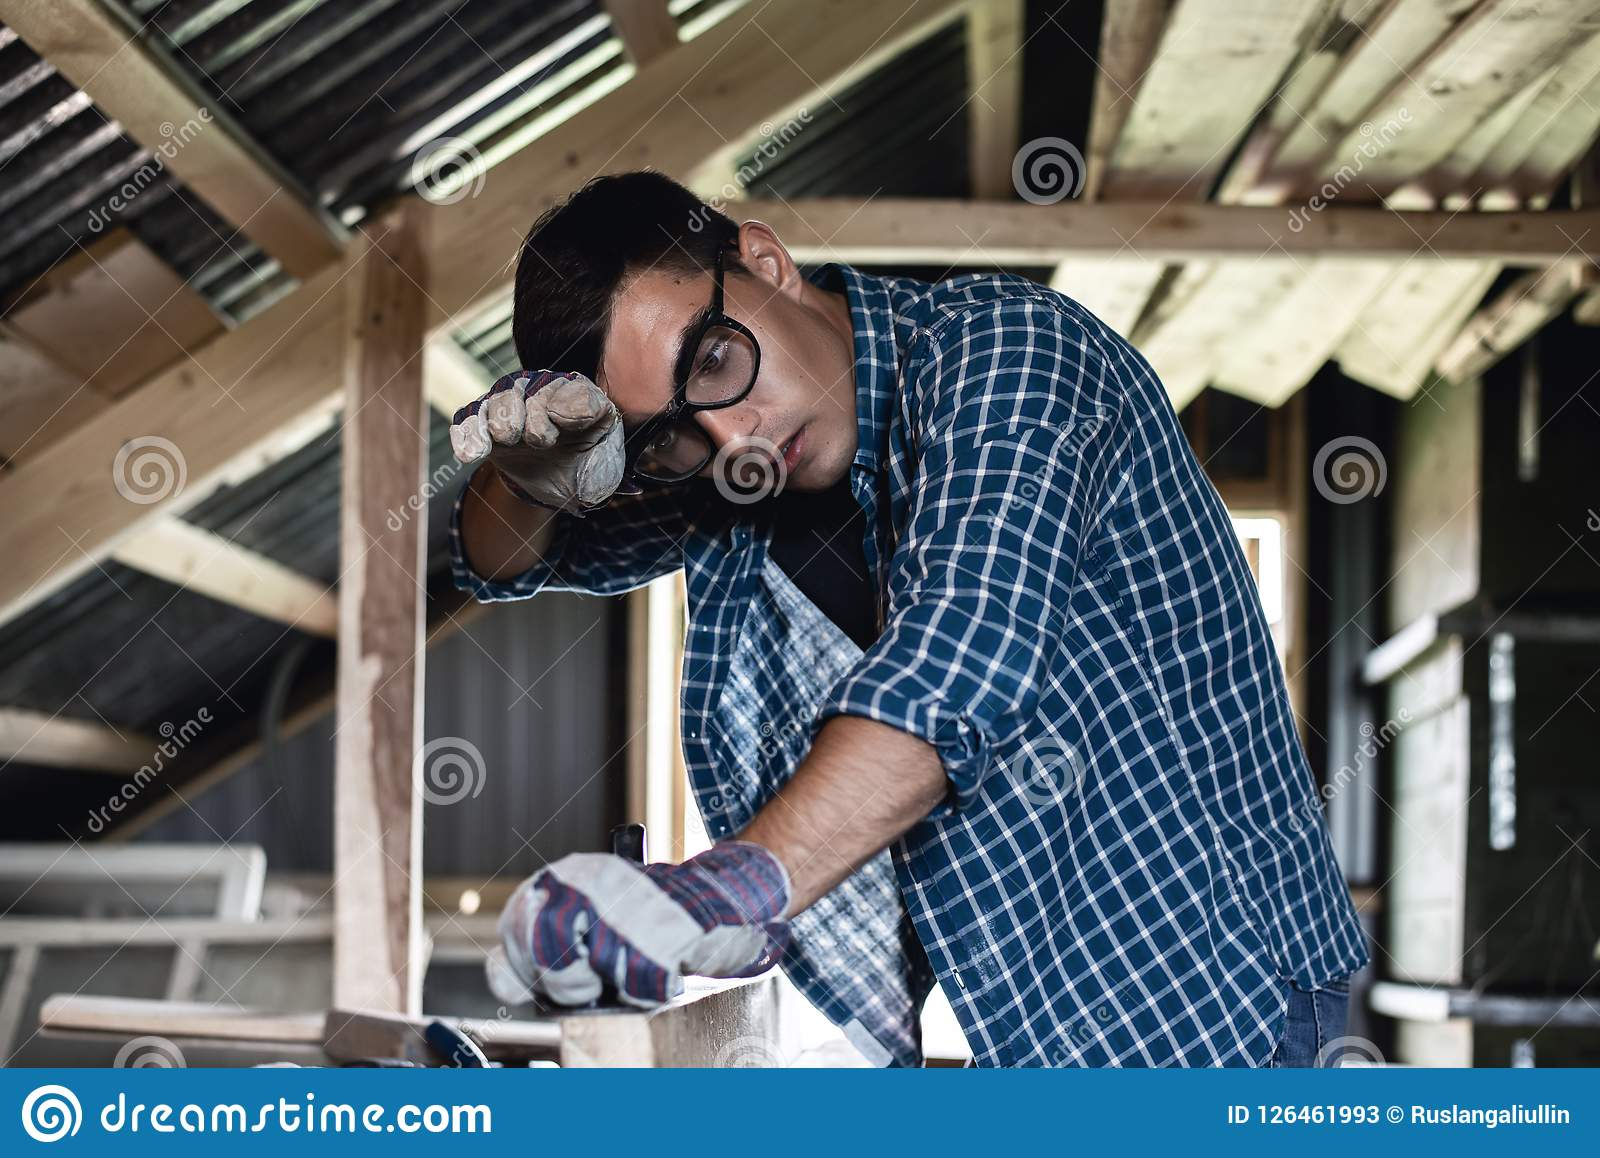 Man in goggles and wipes his forehead from sweat when handling wooden boards planer, heavy manual labor, handyman